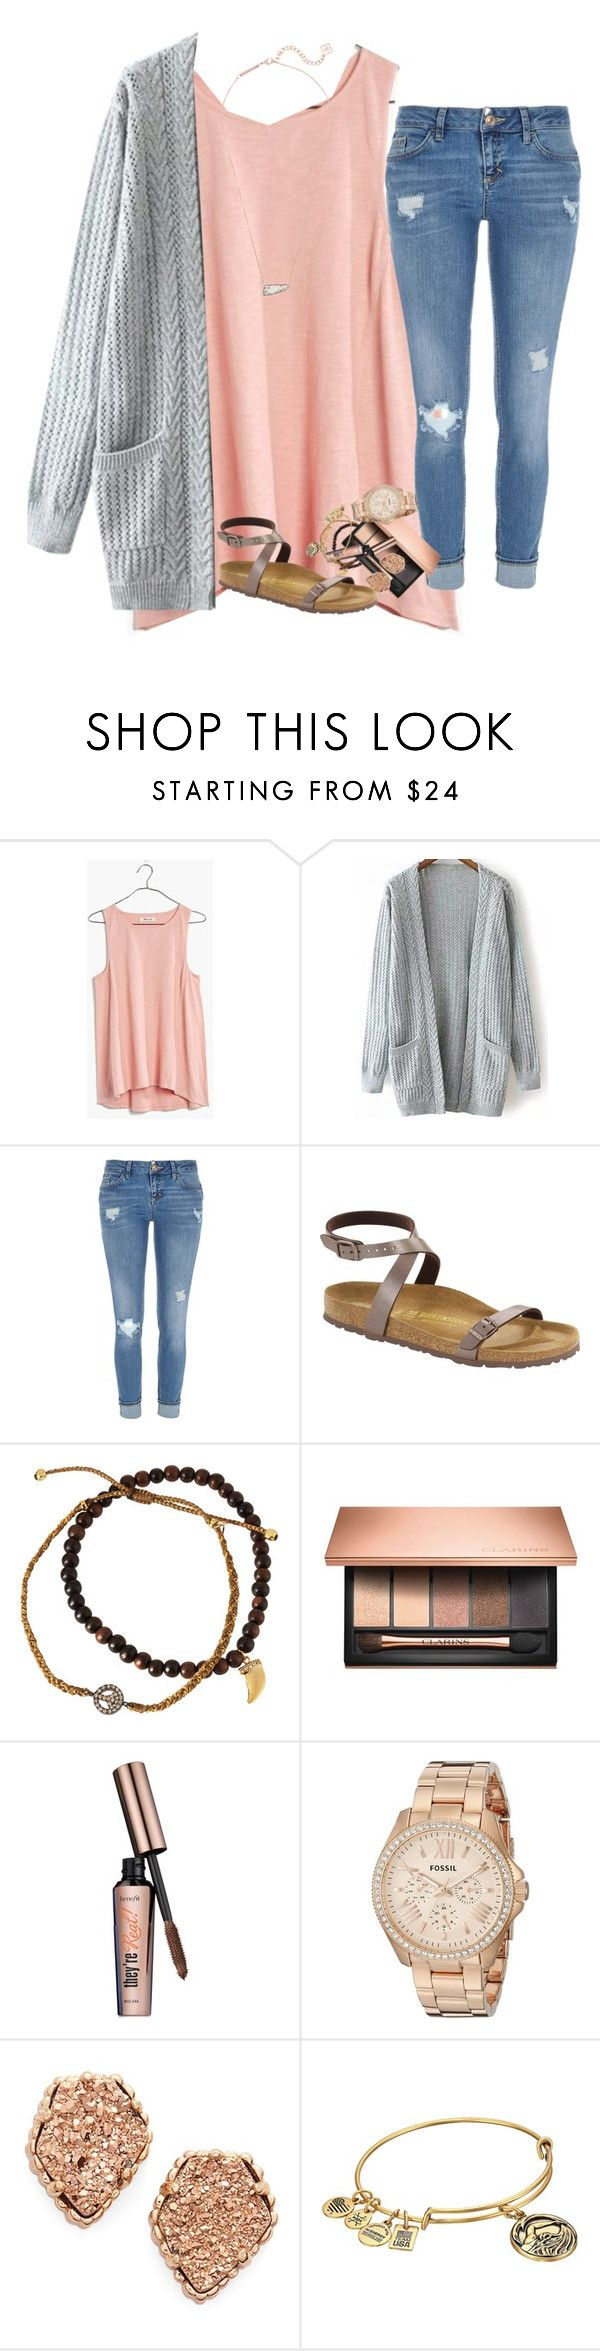 """Fall"" by kyliegrace ❤ liked on Polyvore featuring beauty, Madewell, River Island, Birkenstock, Tai, Clarins, Benefit, FOSSIL, Kendra Scott and Alex and Ani"